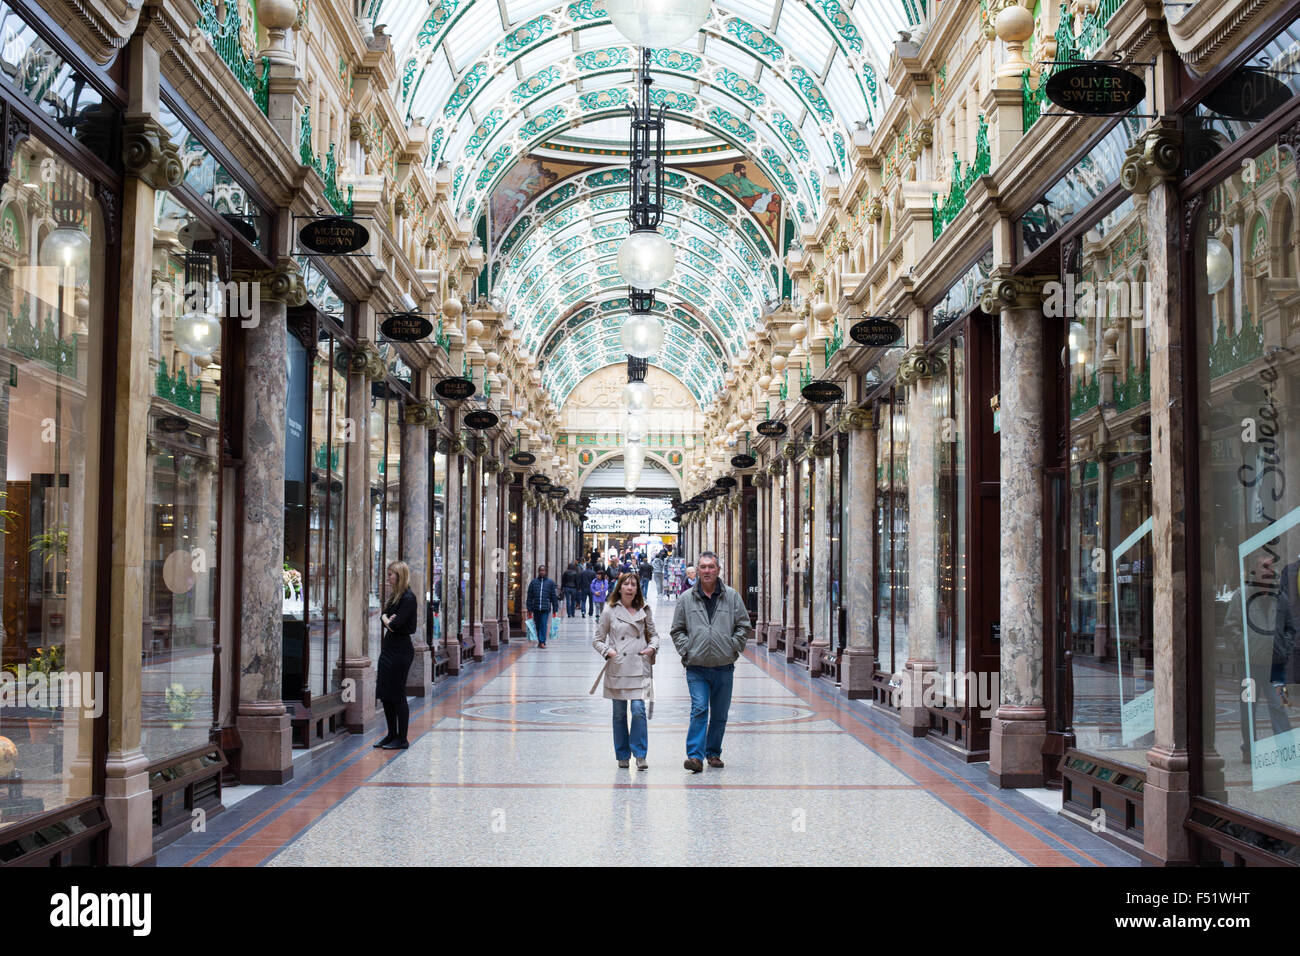 The County Arcade inside the Victoria Quarter in Leeds, West Yorkshire - Stock Image